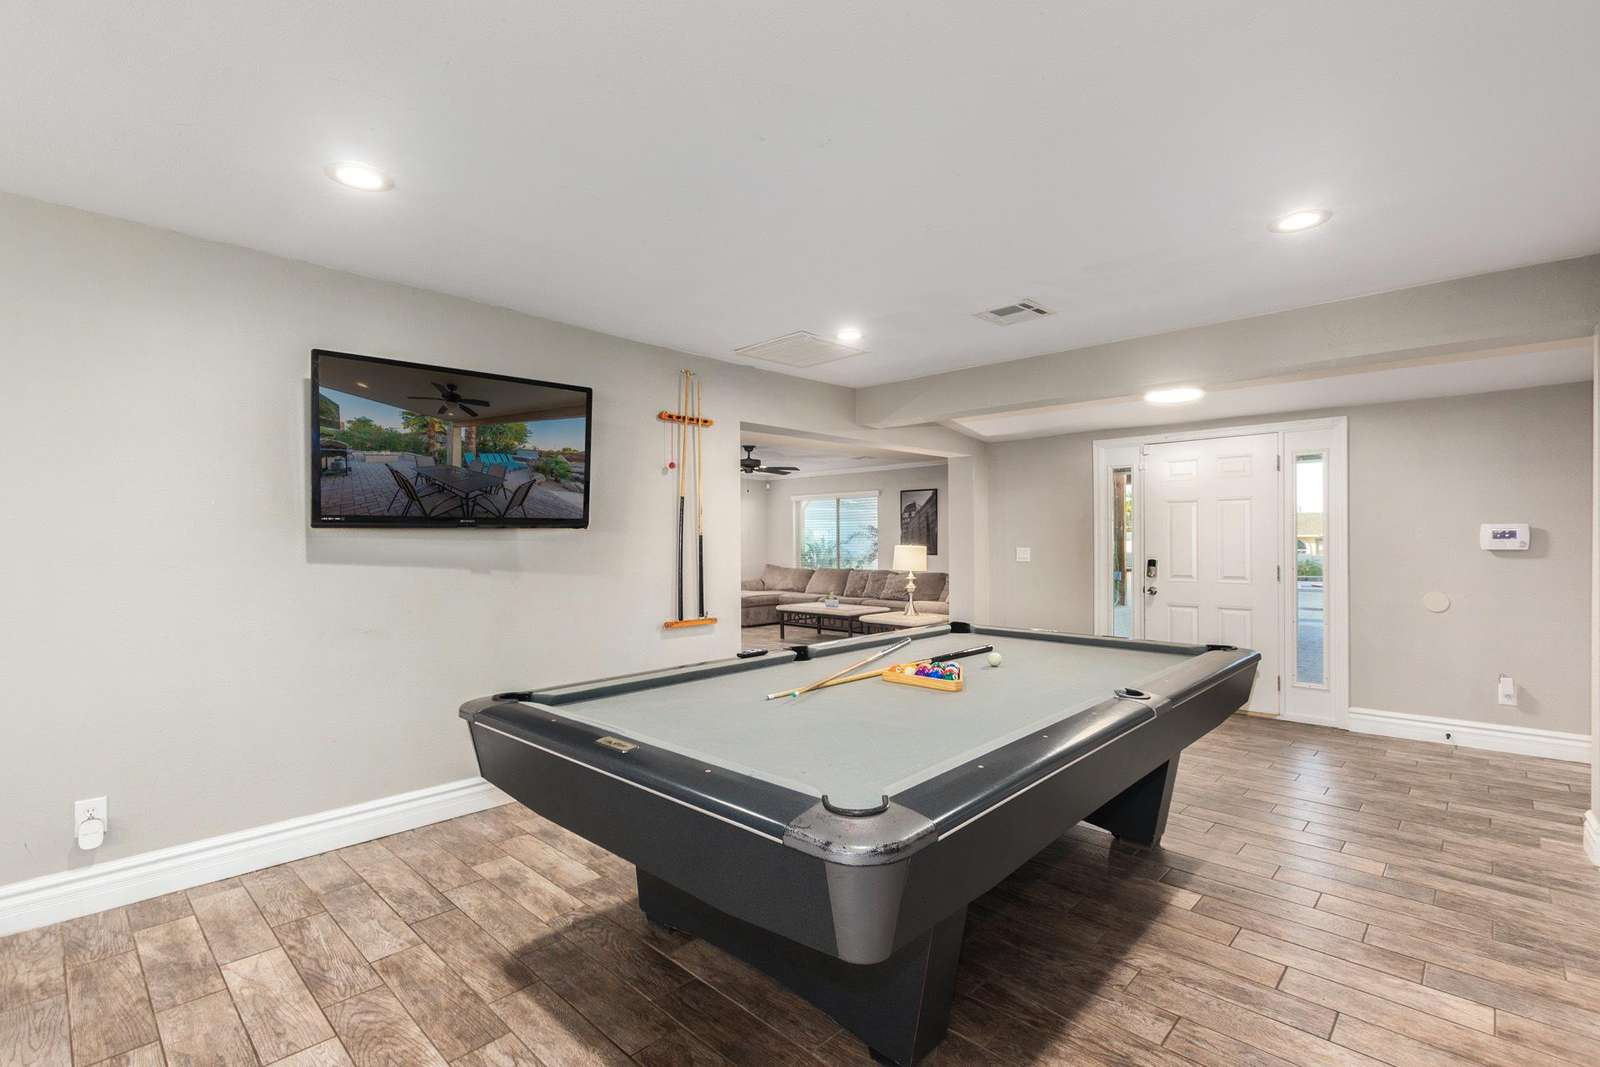 9' Competition Pool Table.